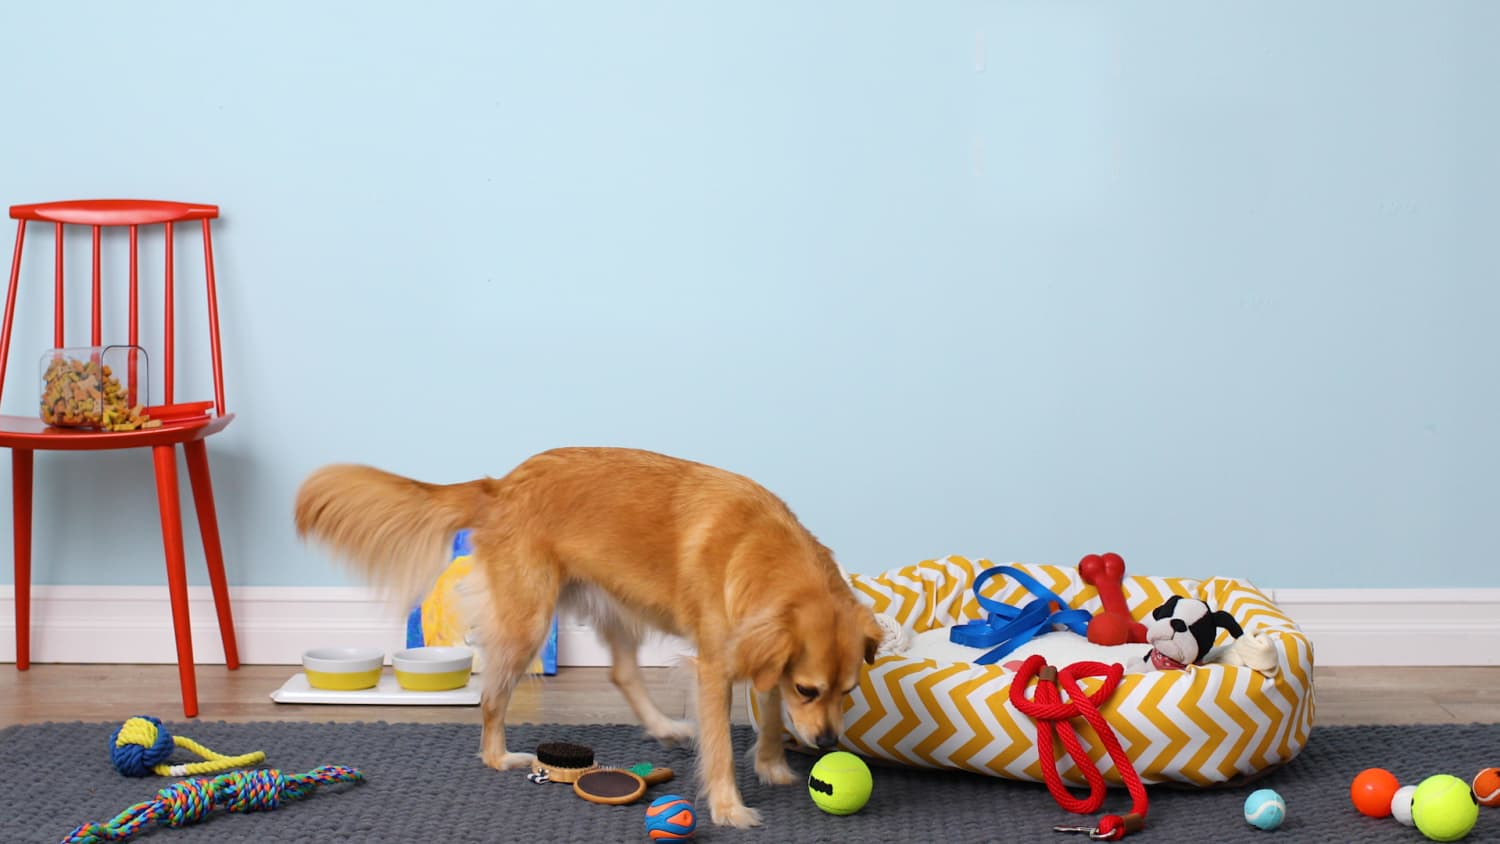 No More Fetching: Keep All Your Pet's Stuff Together in One Place